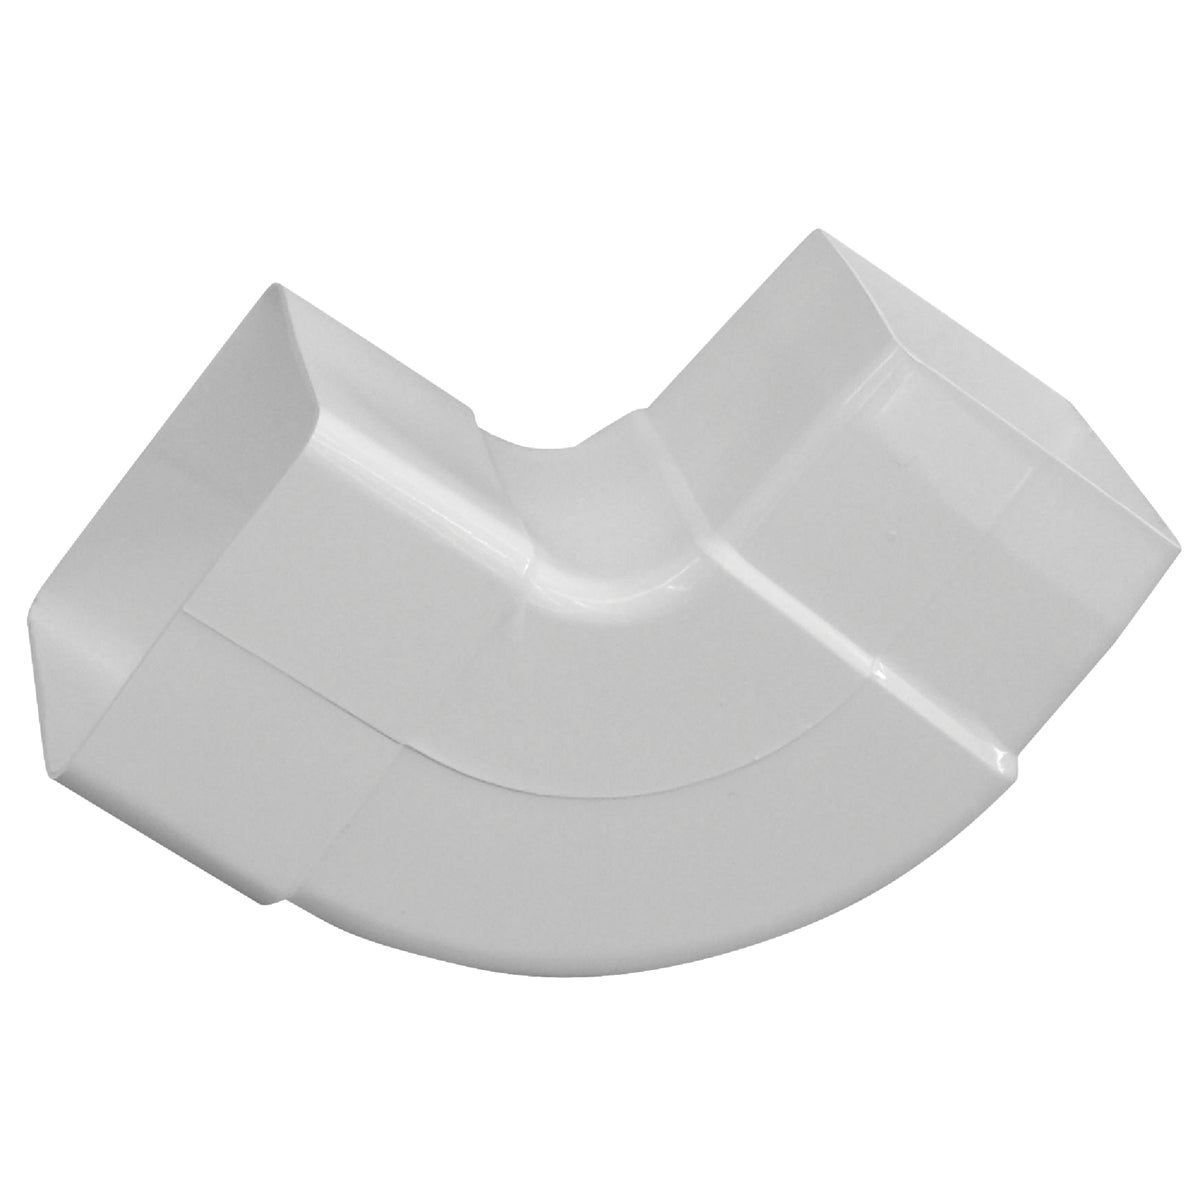 WHT 90DG DOWNSPOUT ELBOW